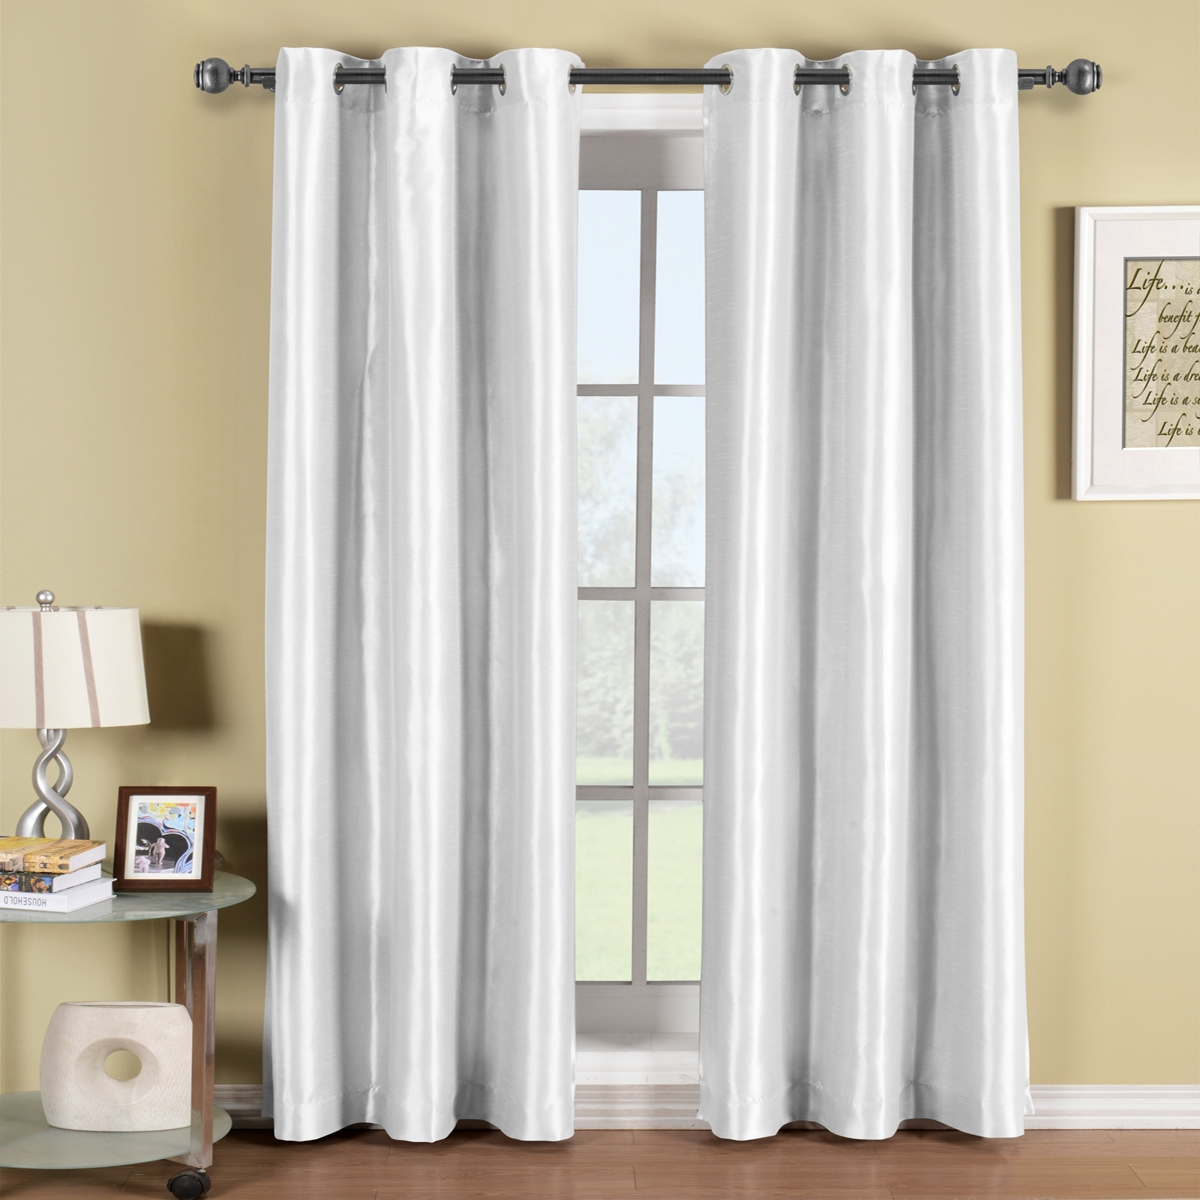 White Thermal Curtains 84 Best Curtains 2017 Throughout White Thermal Curtains (Image 14 of 15)